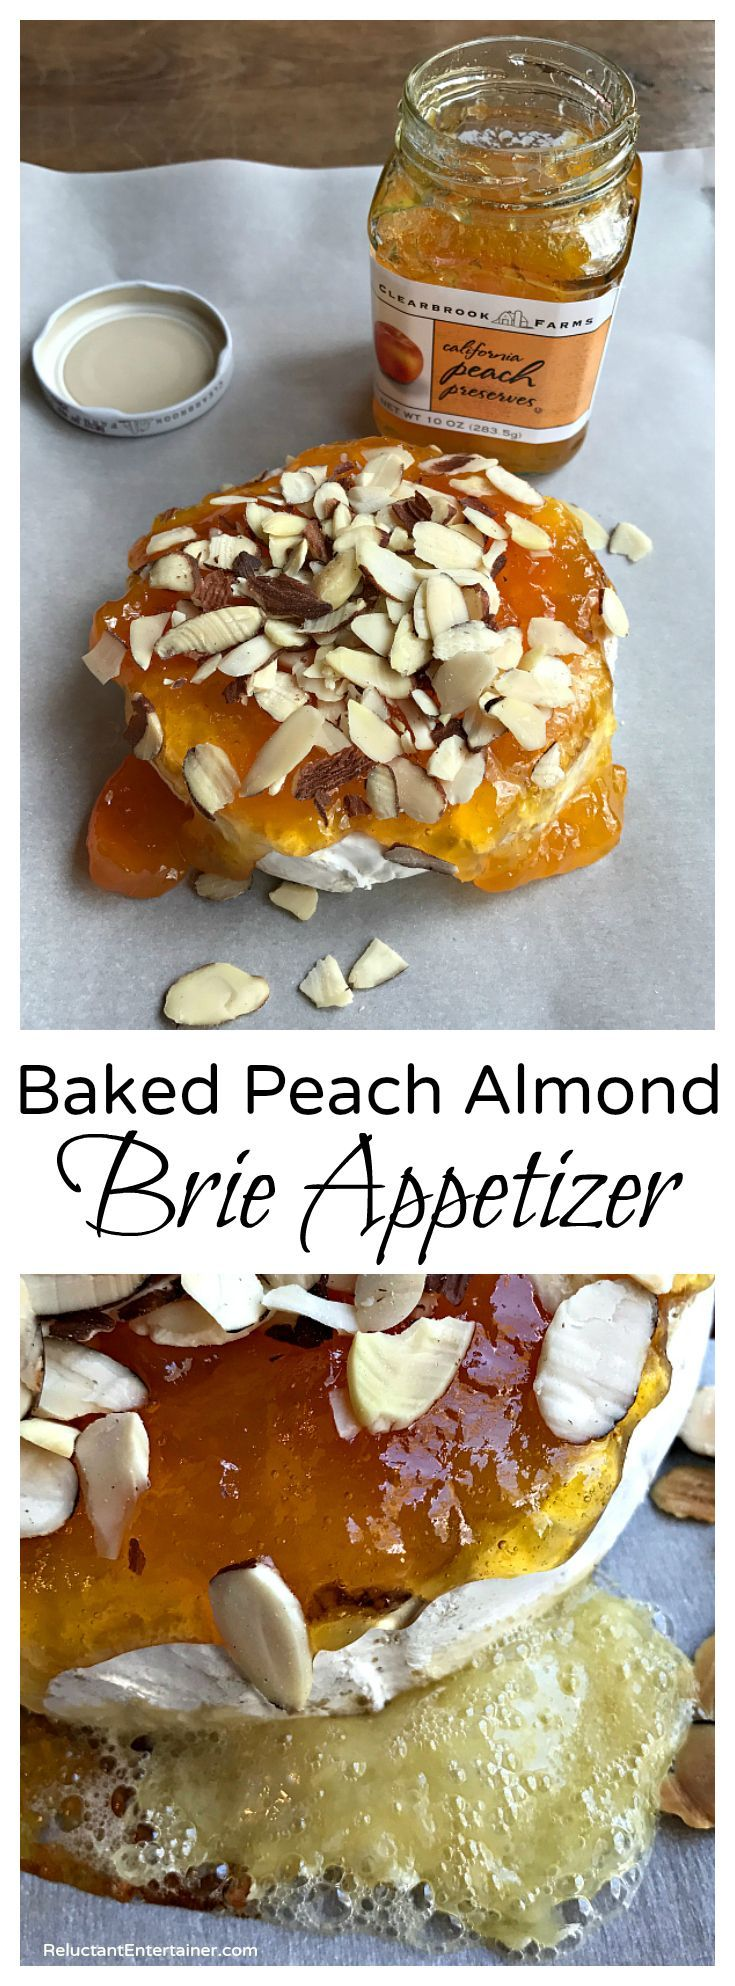 Baked Peach Almond Brie Appetizer, delicious served with gourmet crackers or Ginger Snaps cookies